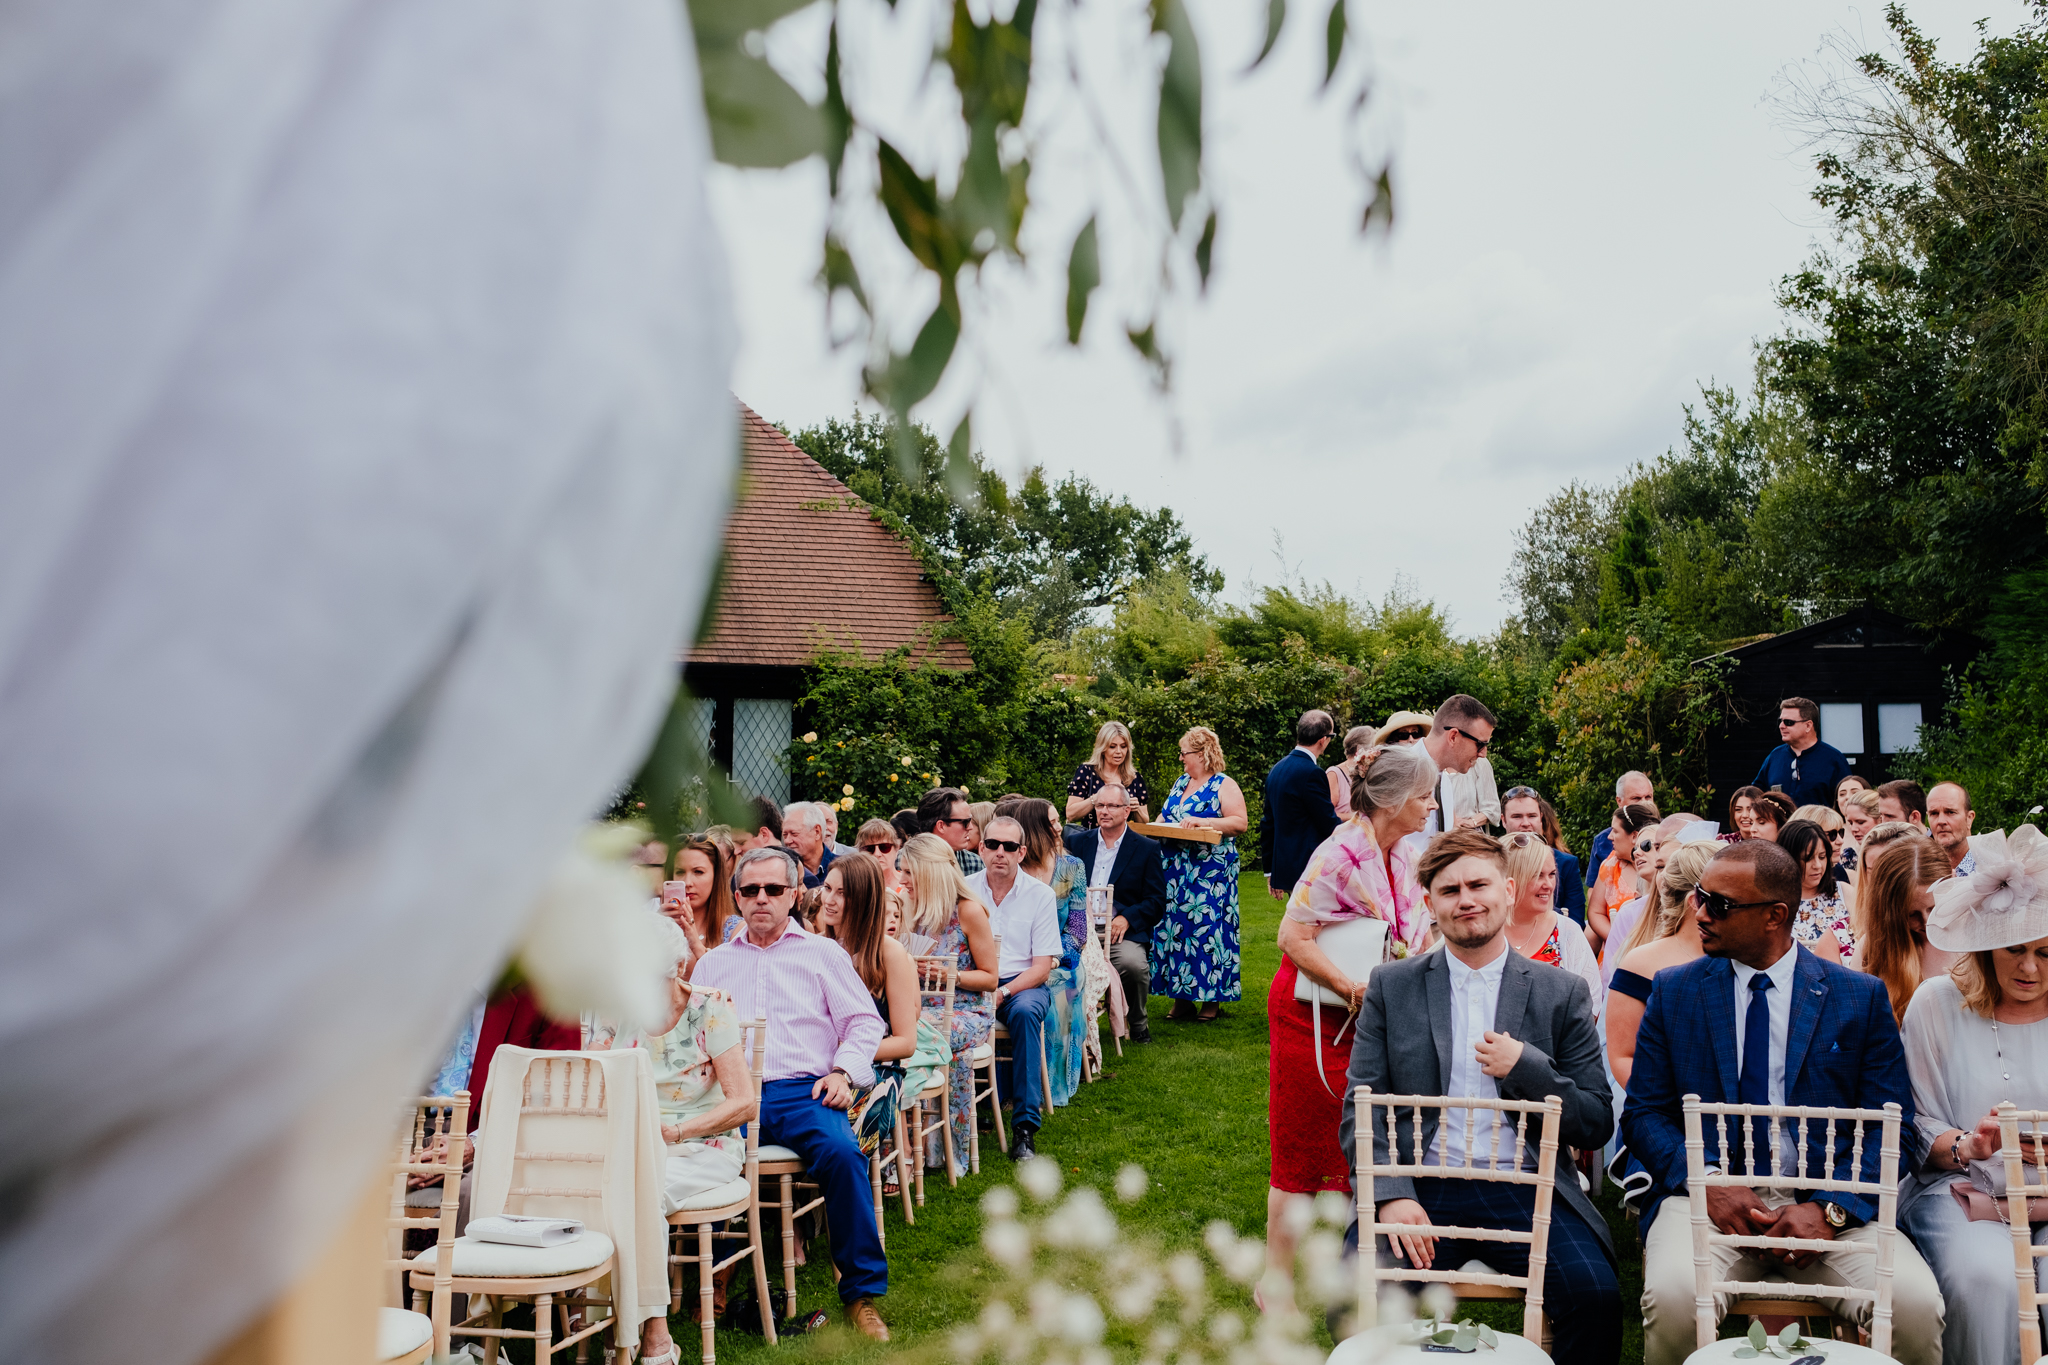 Guests wait for wedding ceremony at Rumbolds Farm